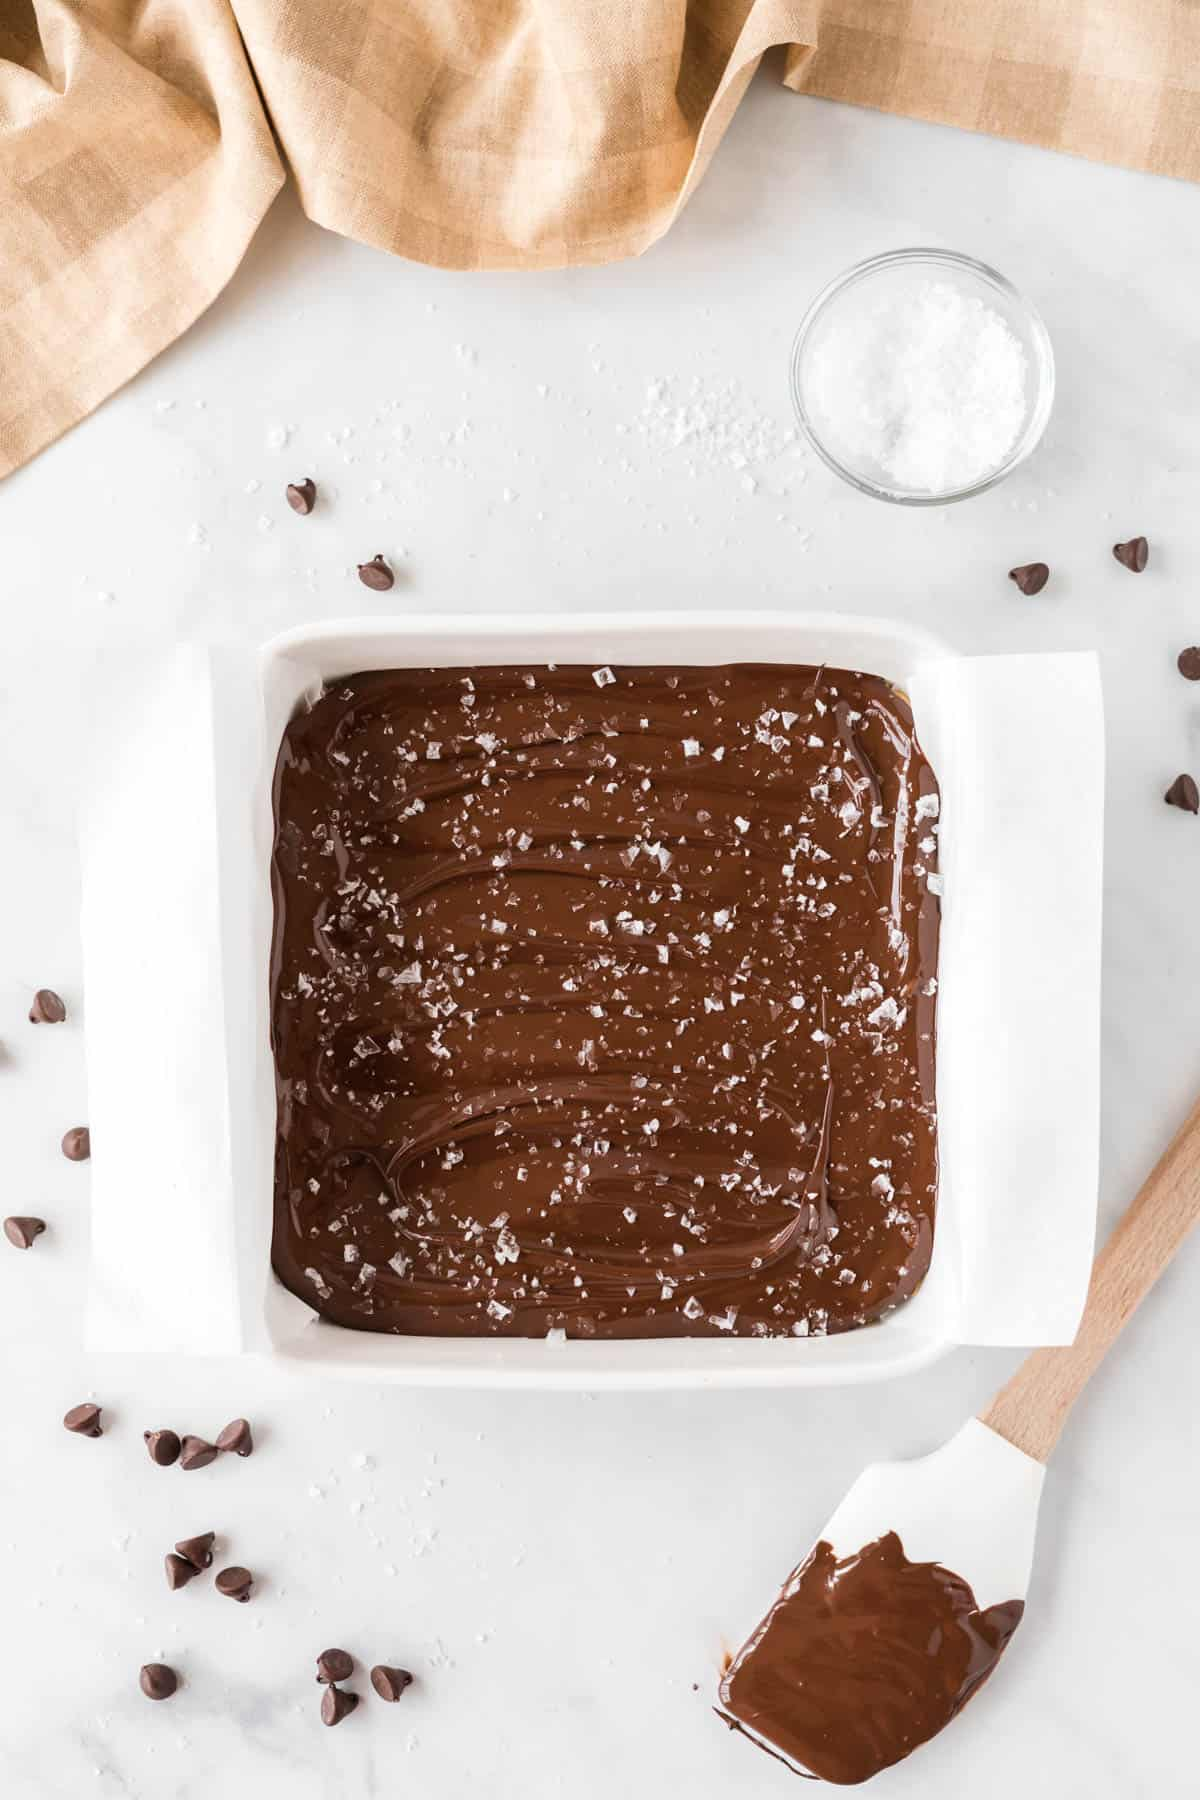 melted chocolate smoothed out and sprinkled with flaked sea salt